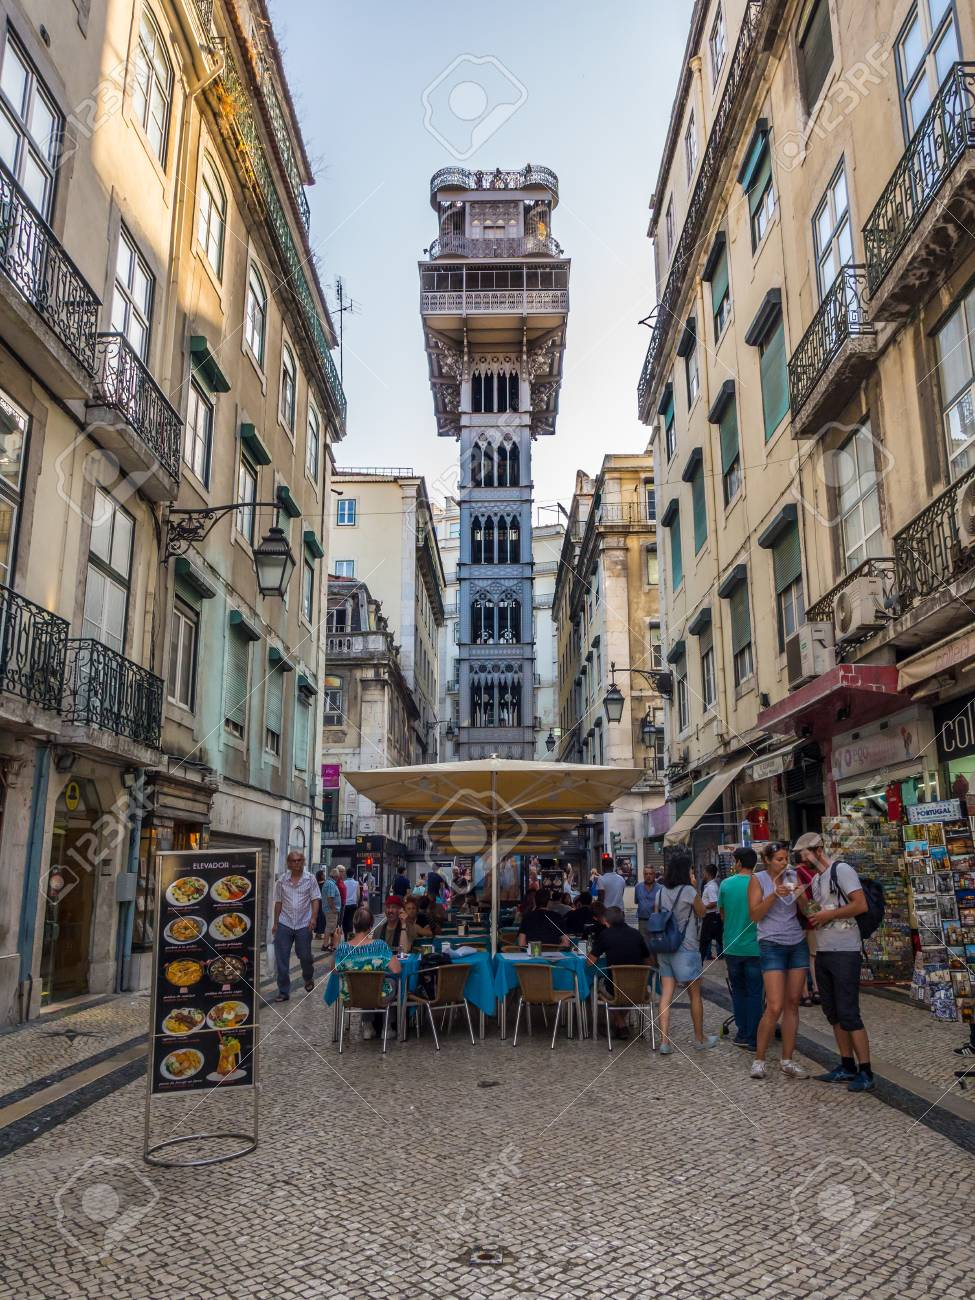 LISBON, PORTUGAL - JUNE 13, 2017: Santa Justa elevator in downtown